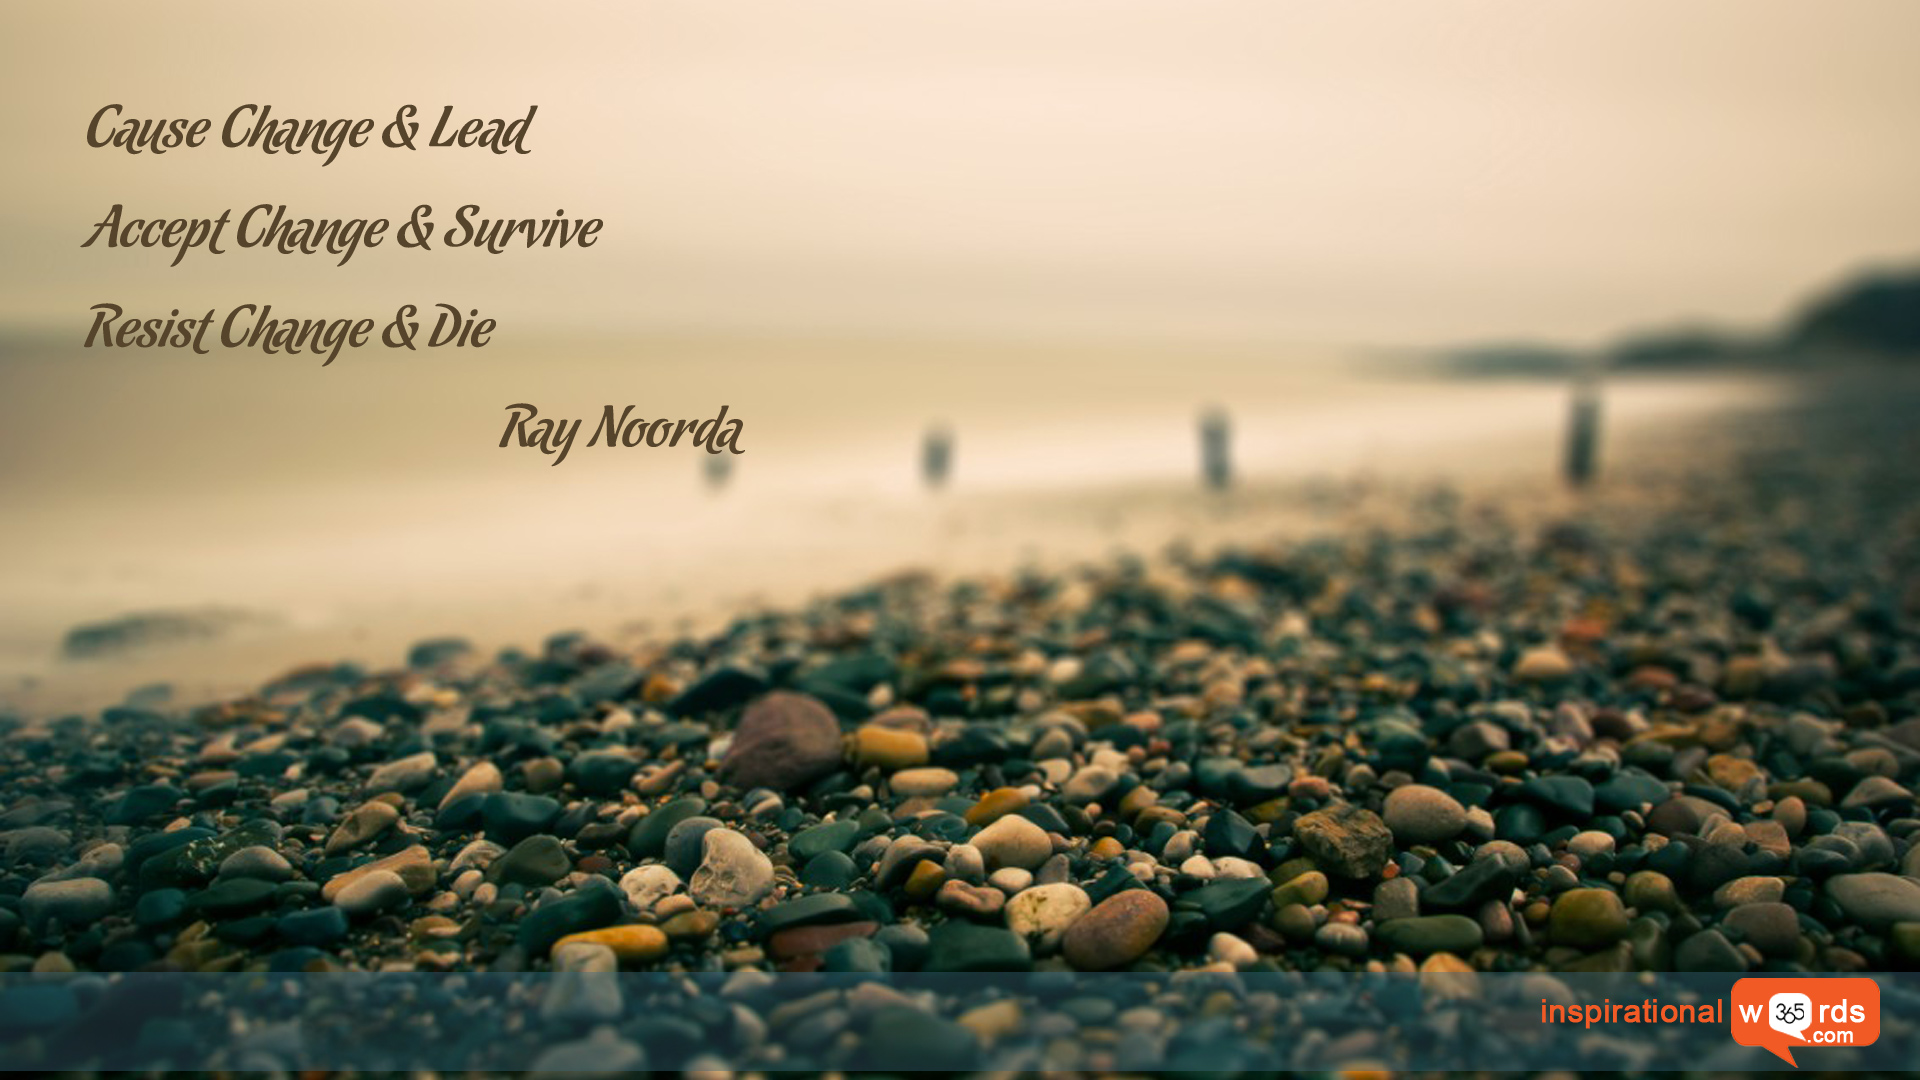 Inspirational Wallpaper Quote by Ray Noorda